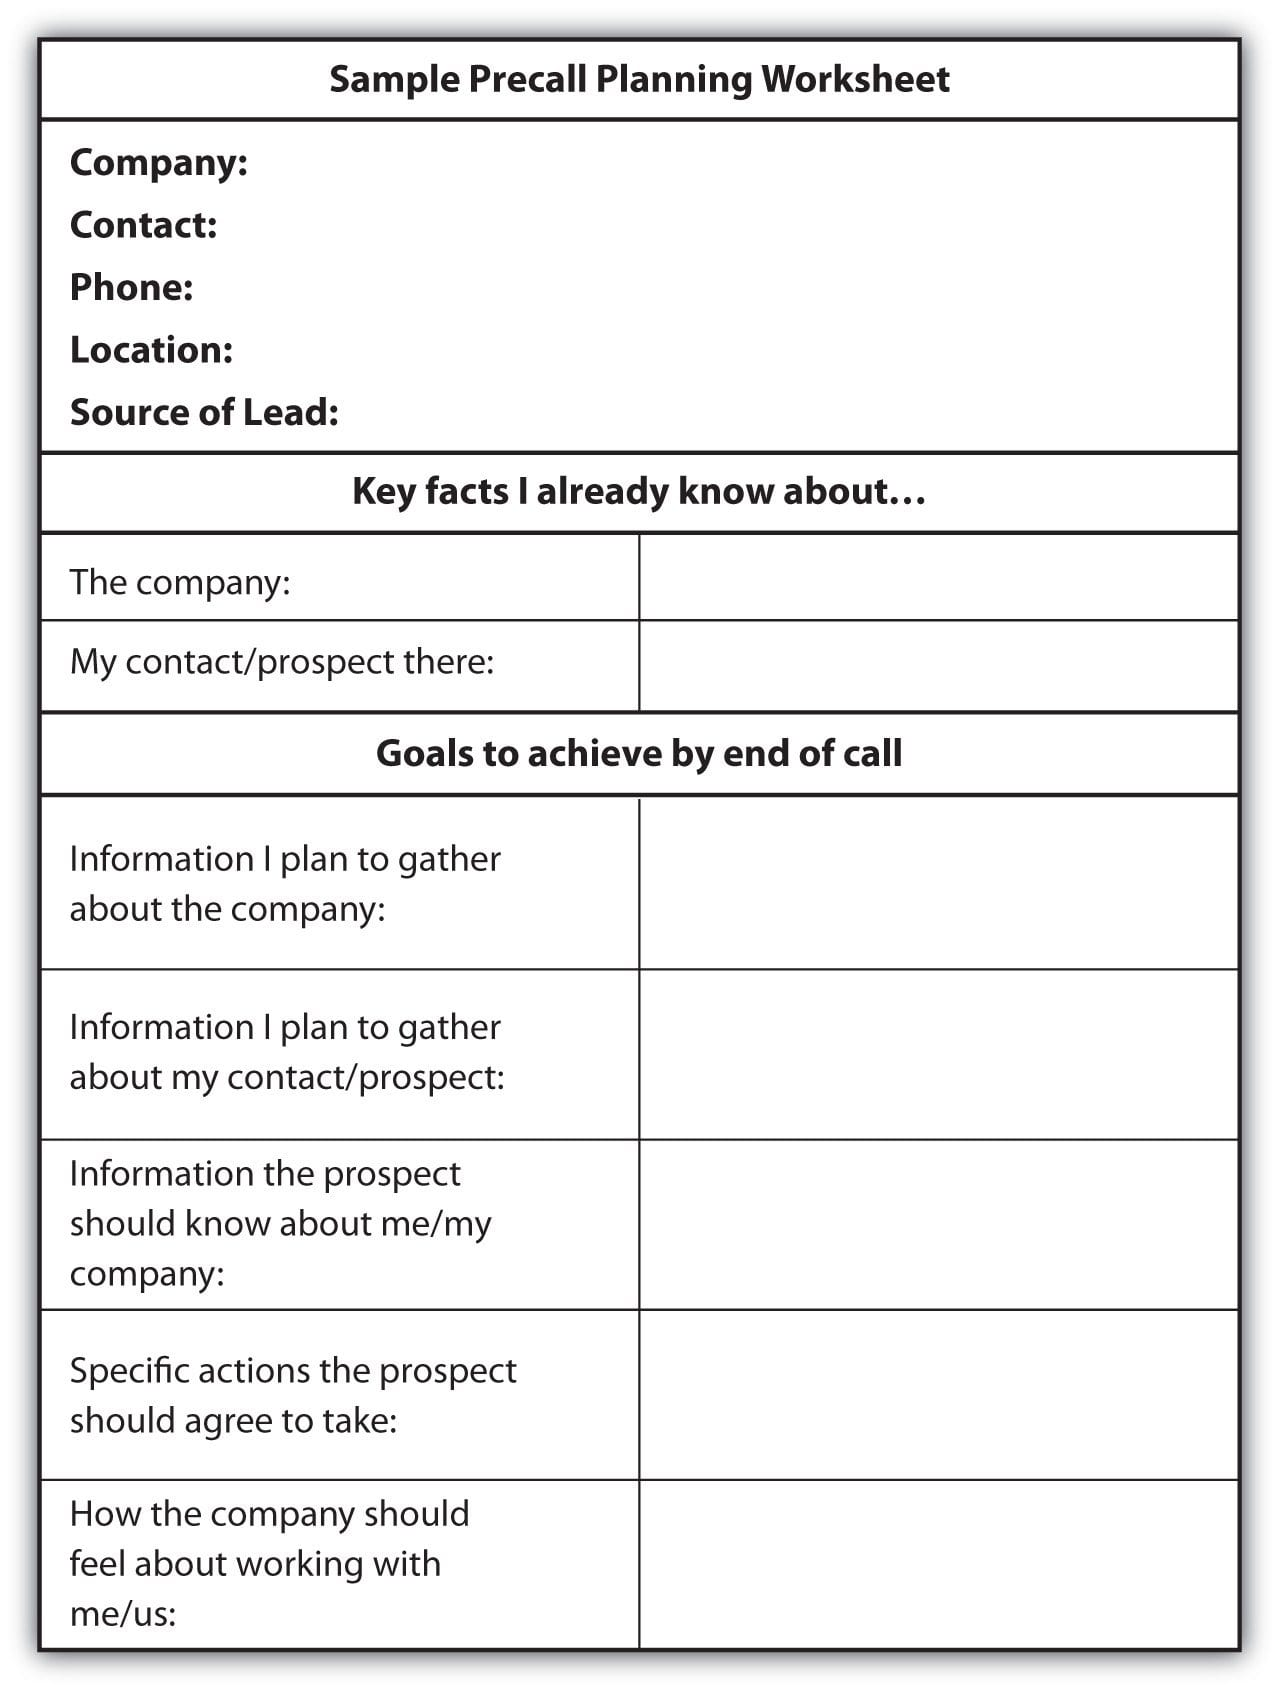 The Preapproach The Power Of Preparation Together With Sales Pre Call Planning Worksheet